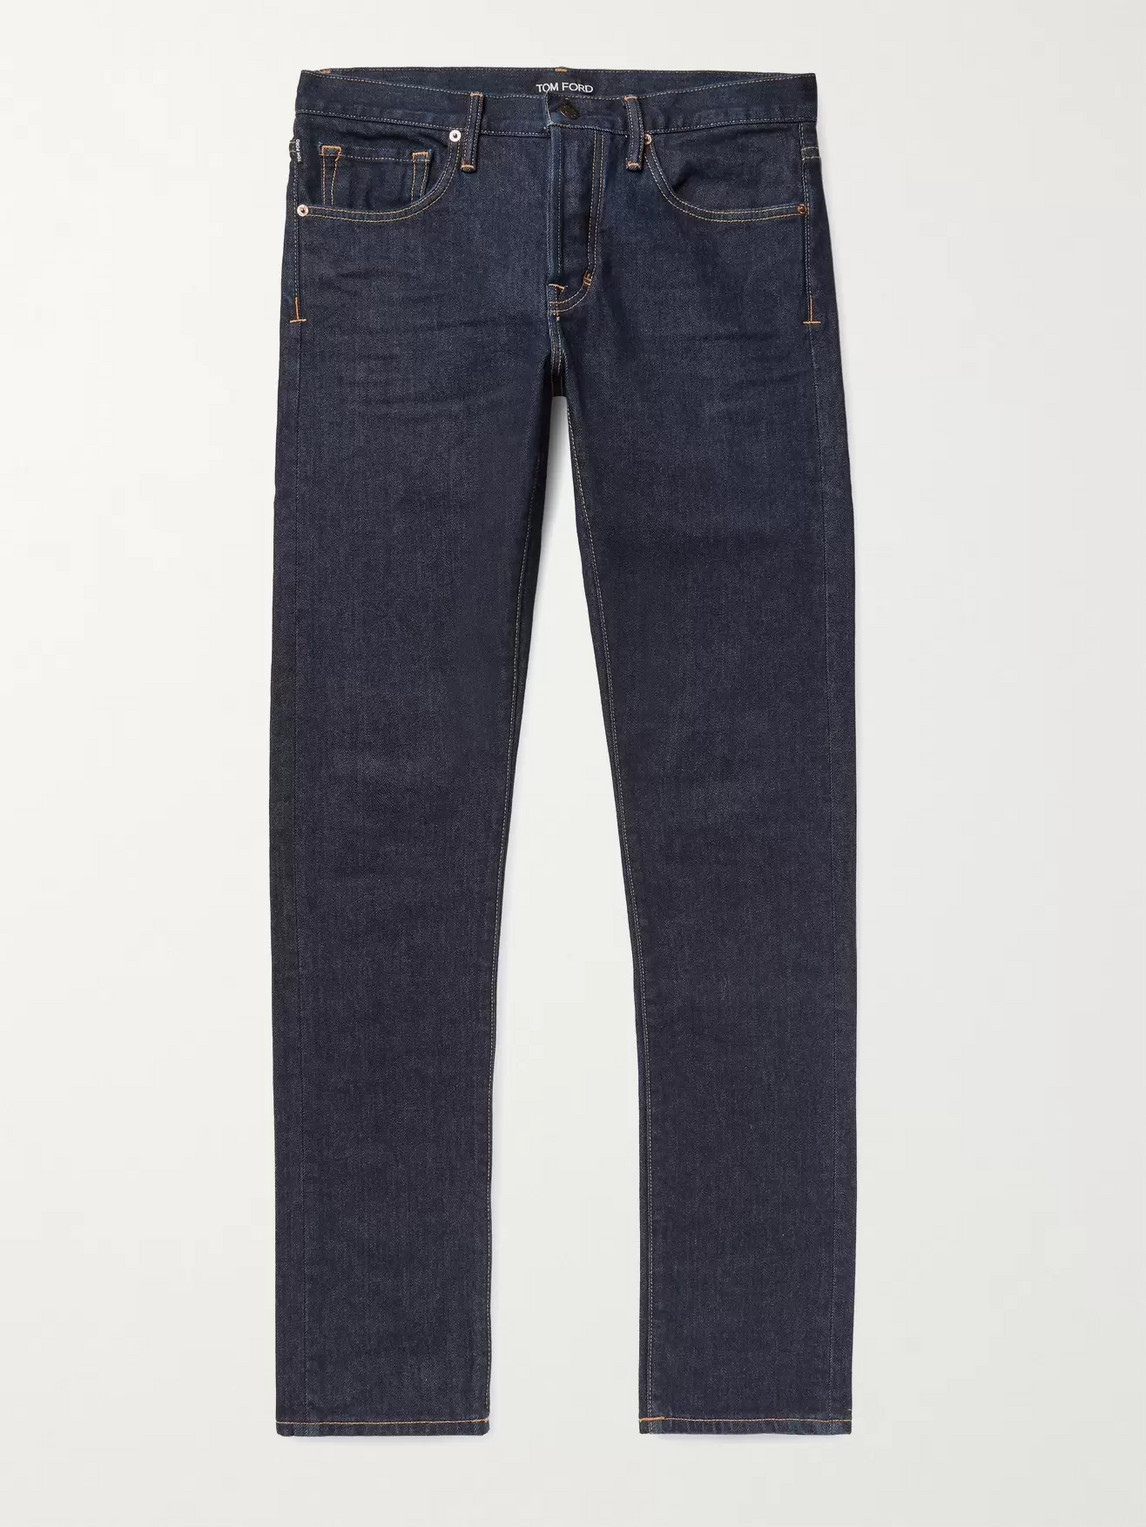 Tom Ford Slim-fit Stretch-denim Jeans In Blue